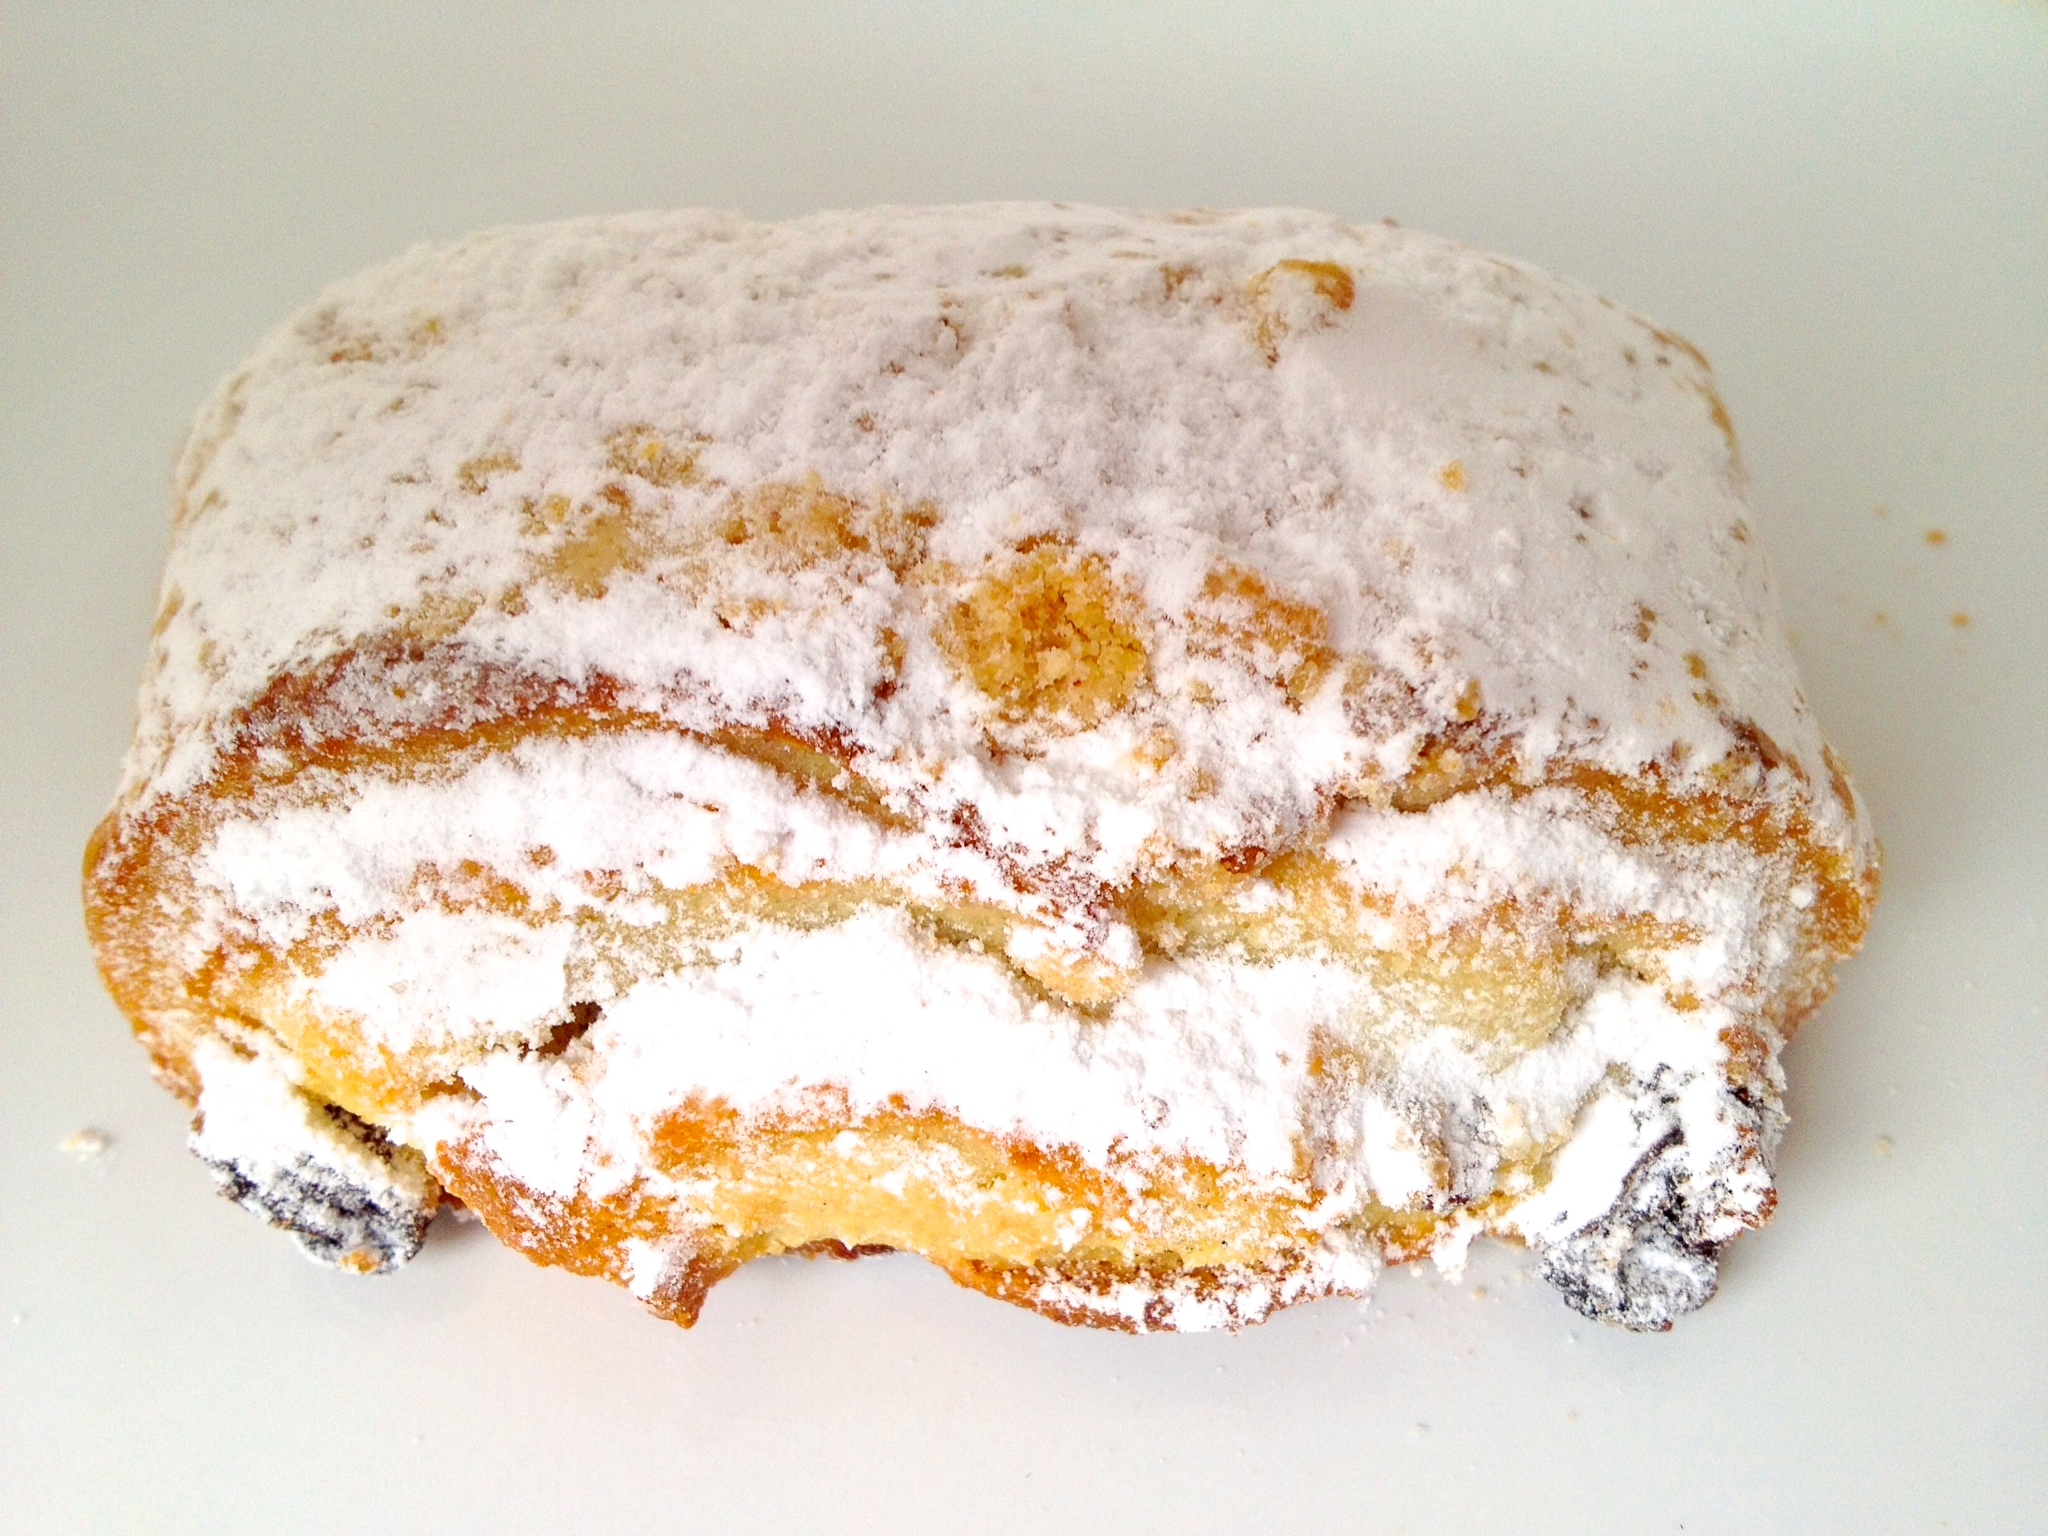 Bobbes: a kind of short bread studded with raisins and filled with what tasted like marzipan and covered with powdered sugar